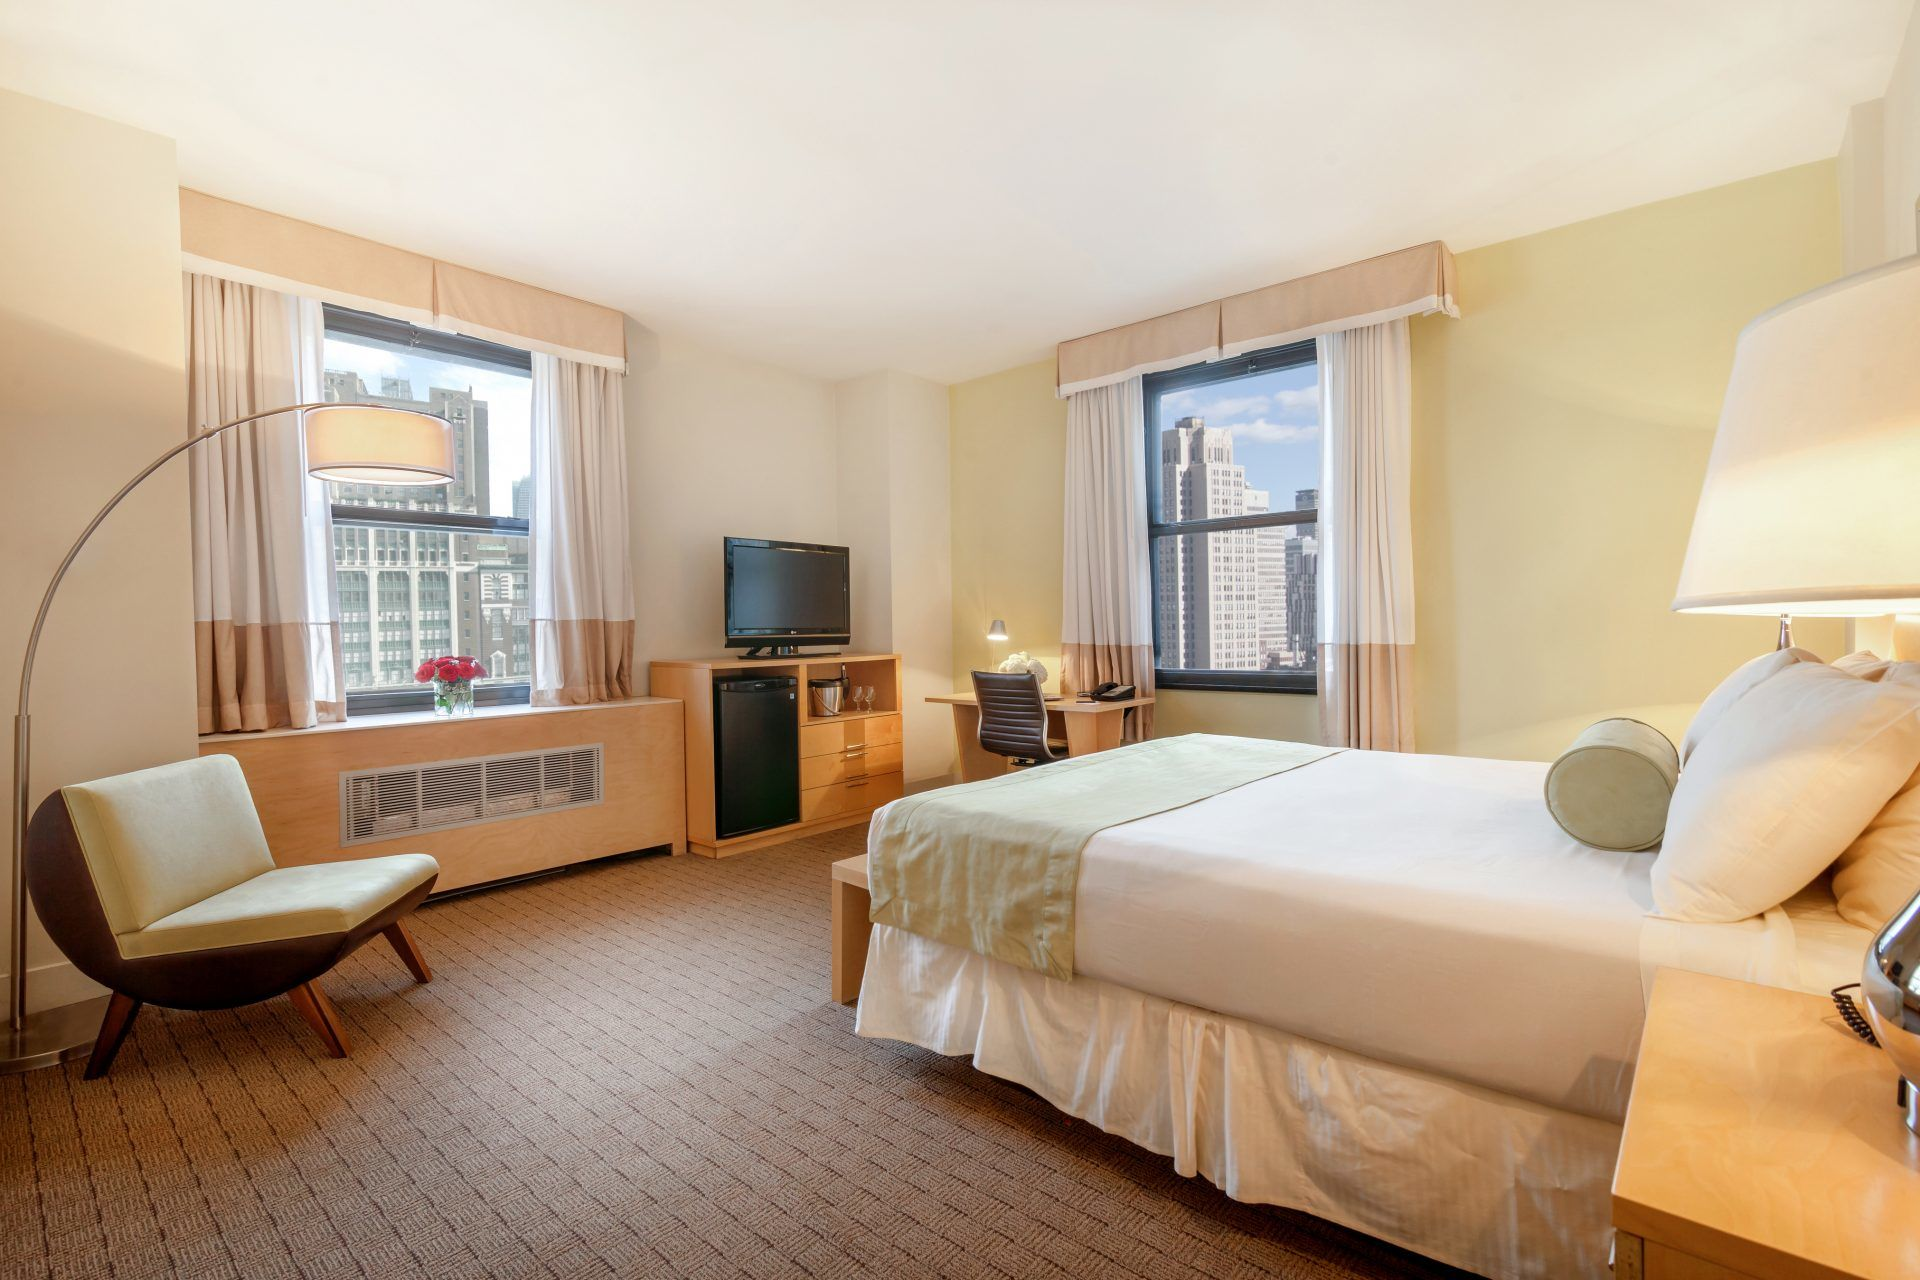 new hotel Book cheap new york hotels now, all with a price match guarantee over 1346 new york hotels starting at $69 with no cancellation fees, only with travelocity's customer first guarantee.